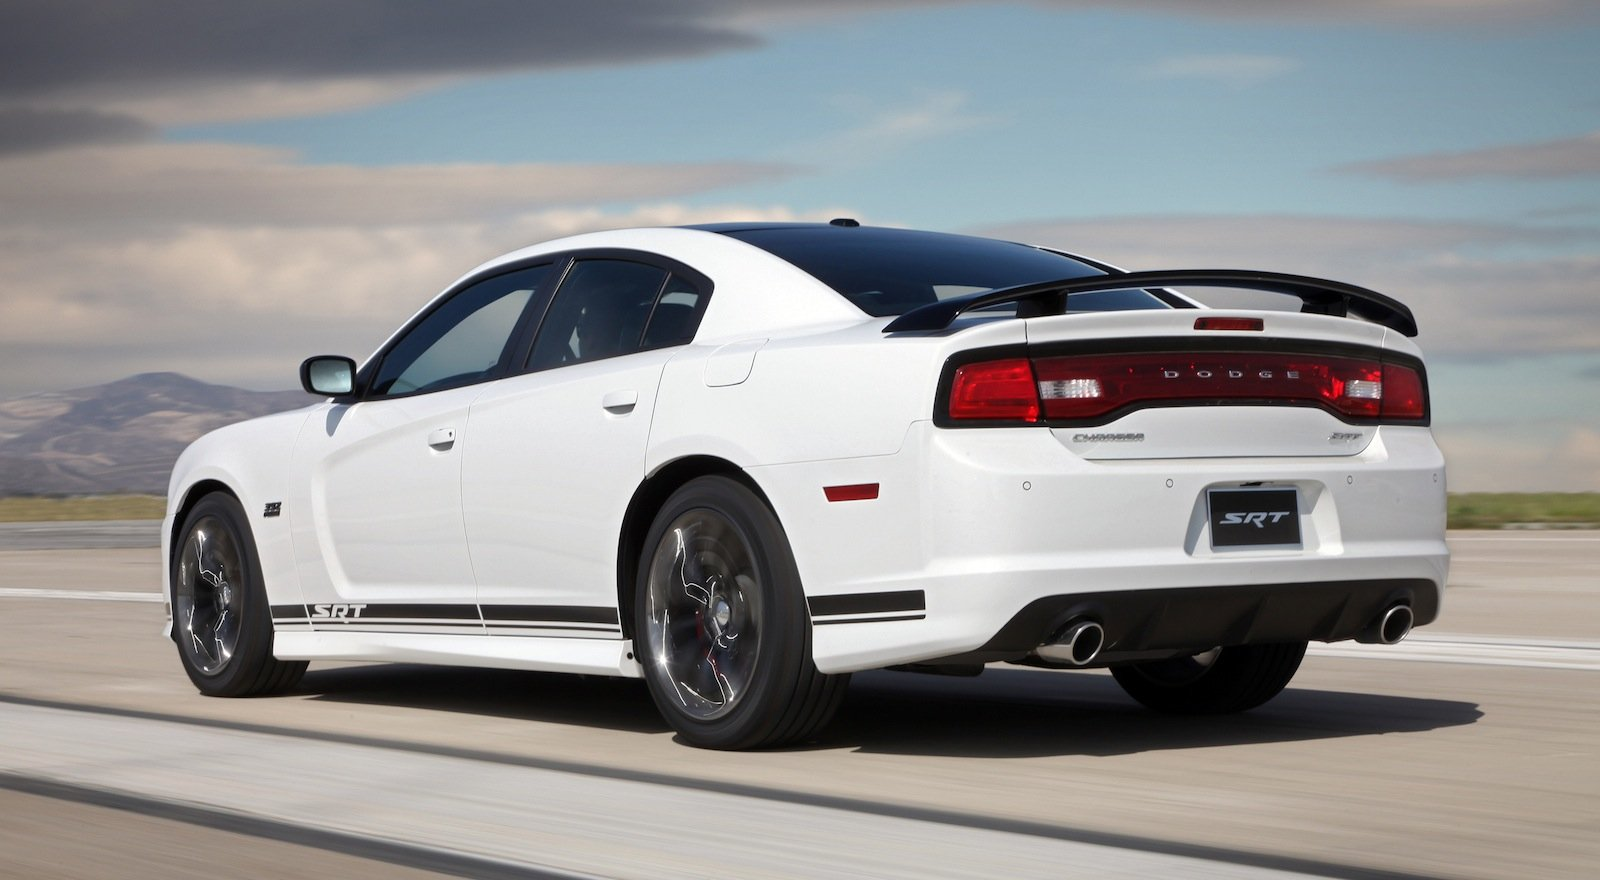 2014 Dodge Charger #4